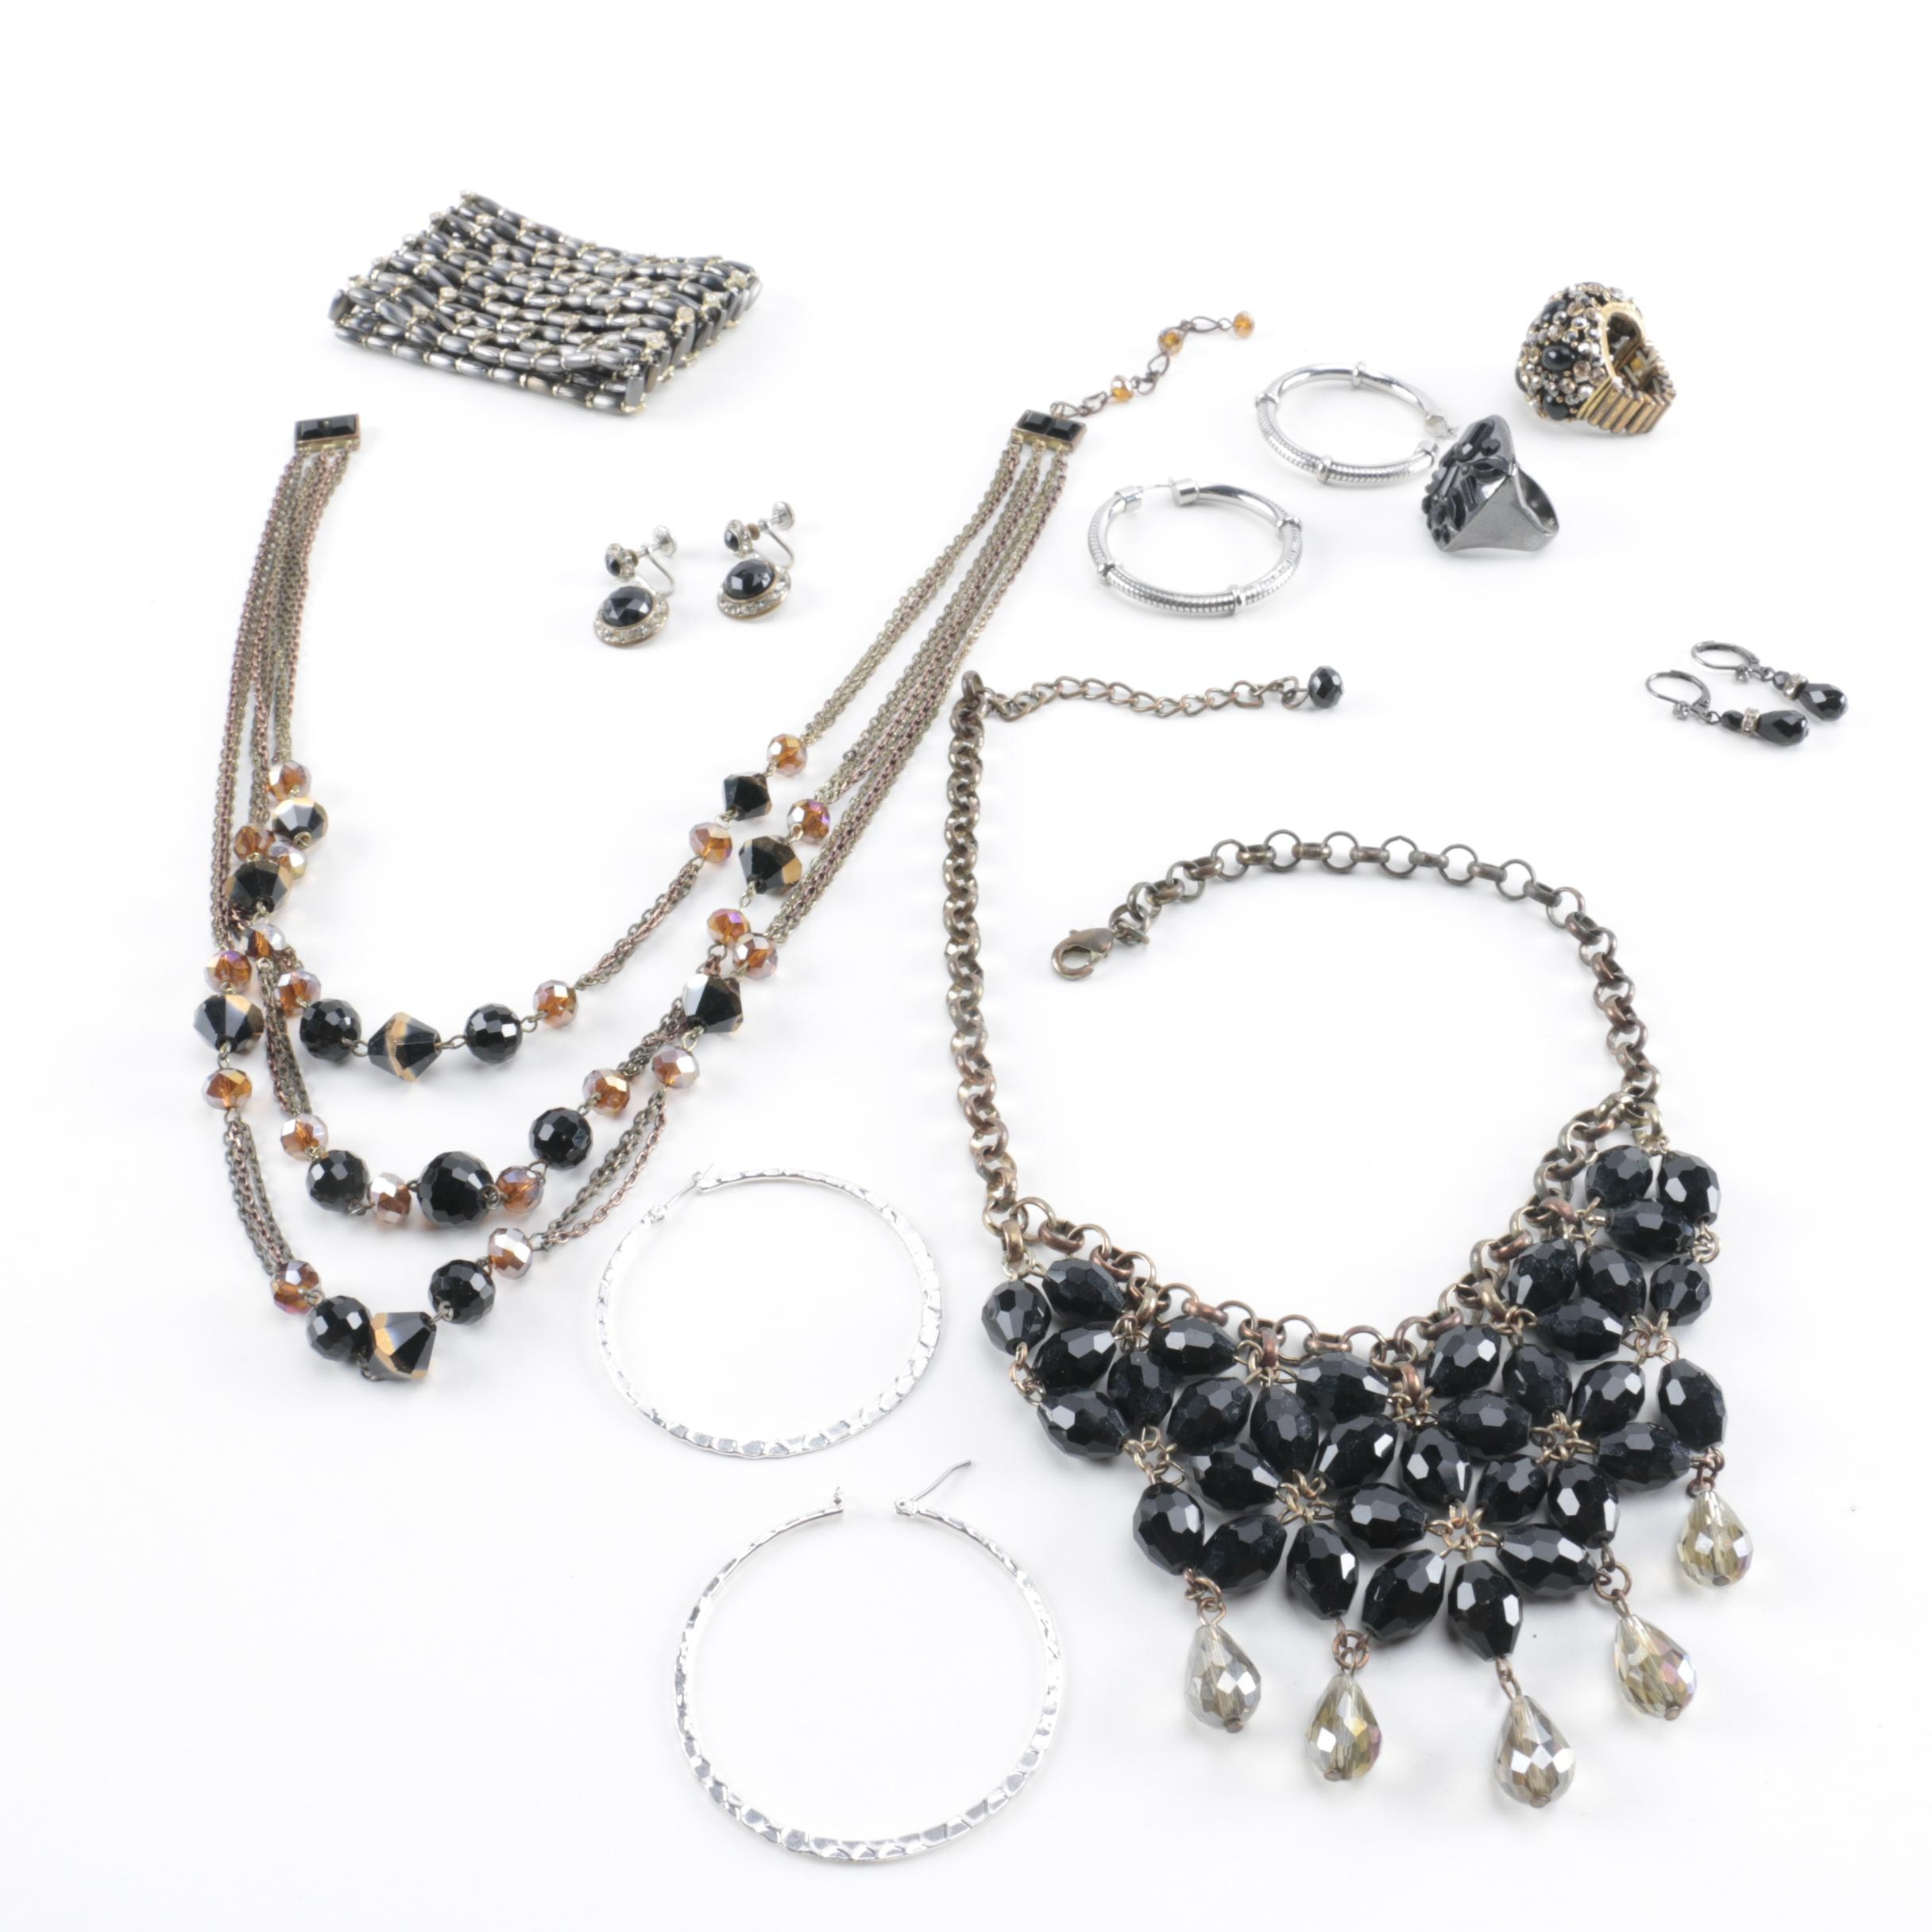 Collection of Vintage Inspired Jewelry